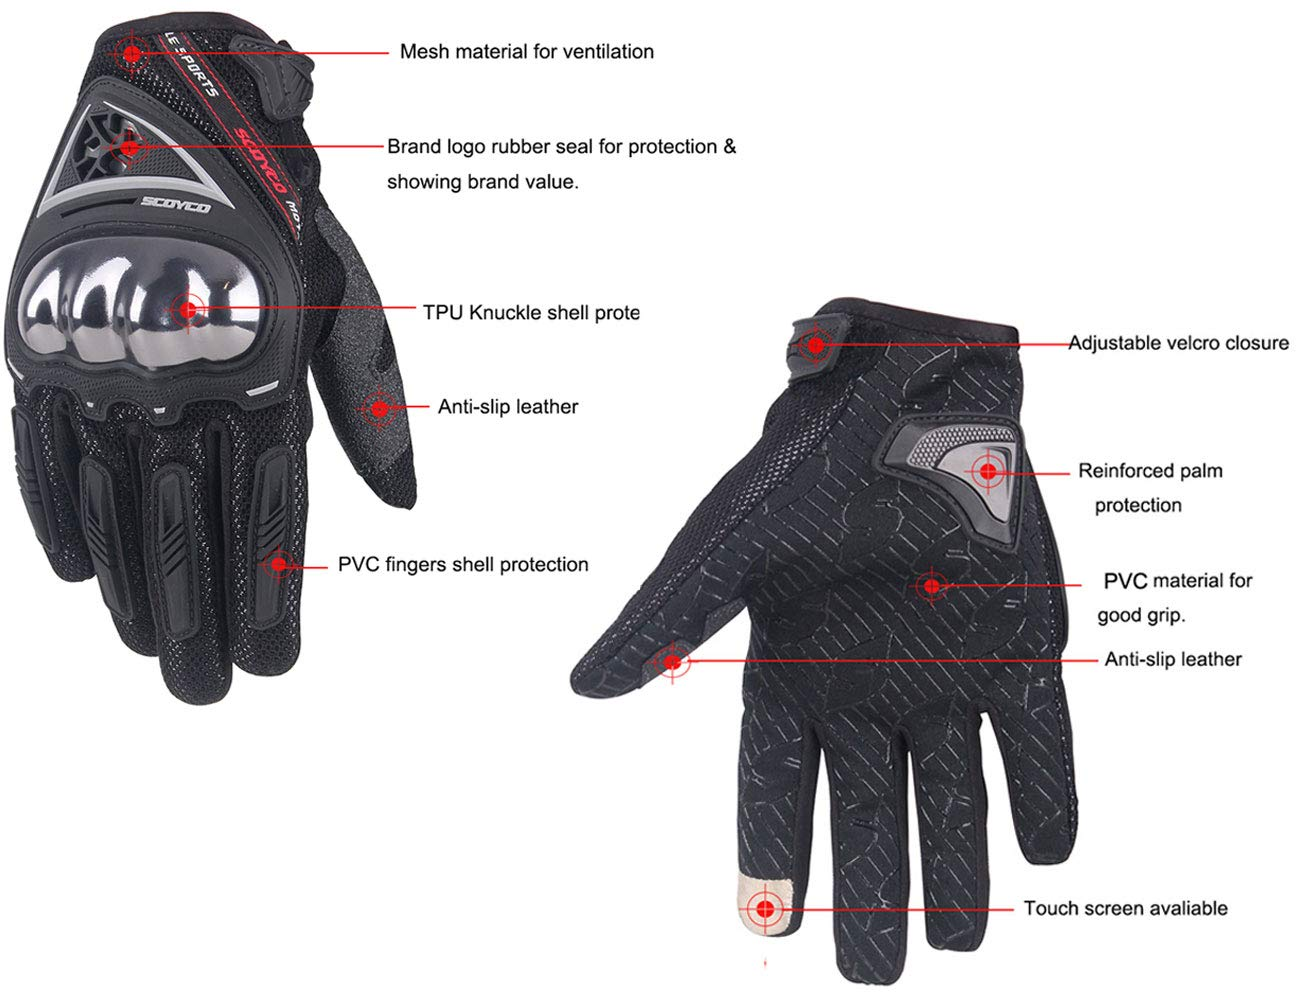 SCOYCO Men's Race Extreme Sports Protective Outdoor Motorcycle Gloves(Black,XL) by SCOYCO (Image #2)